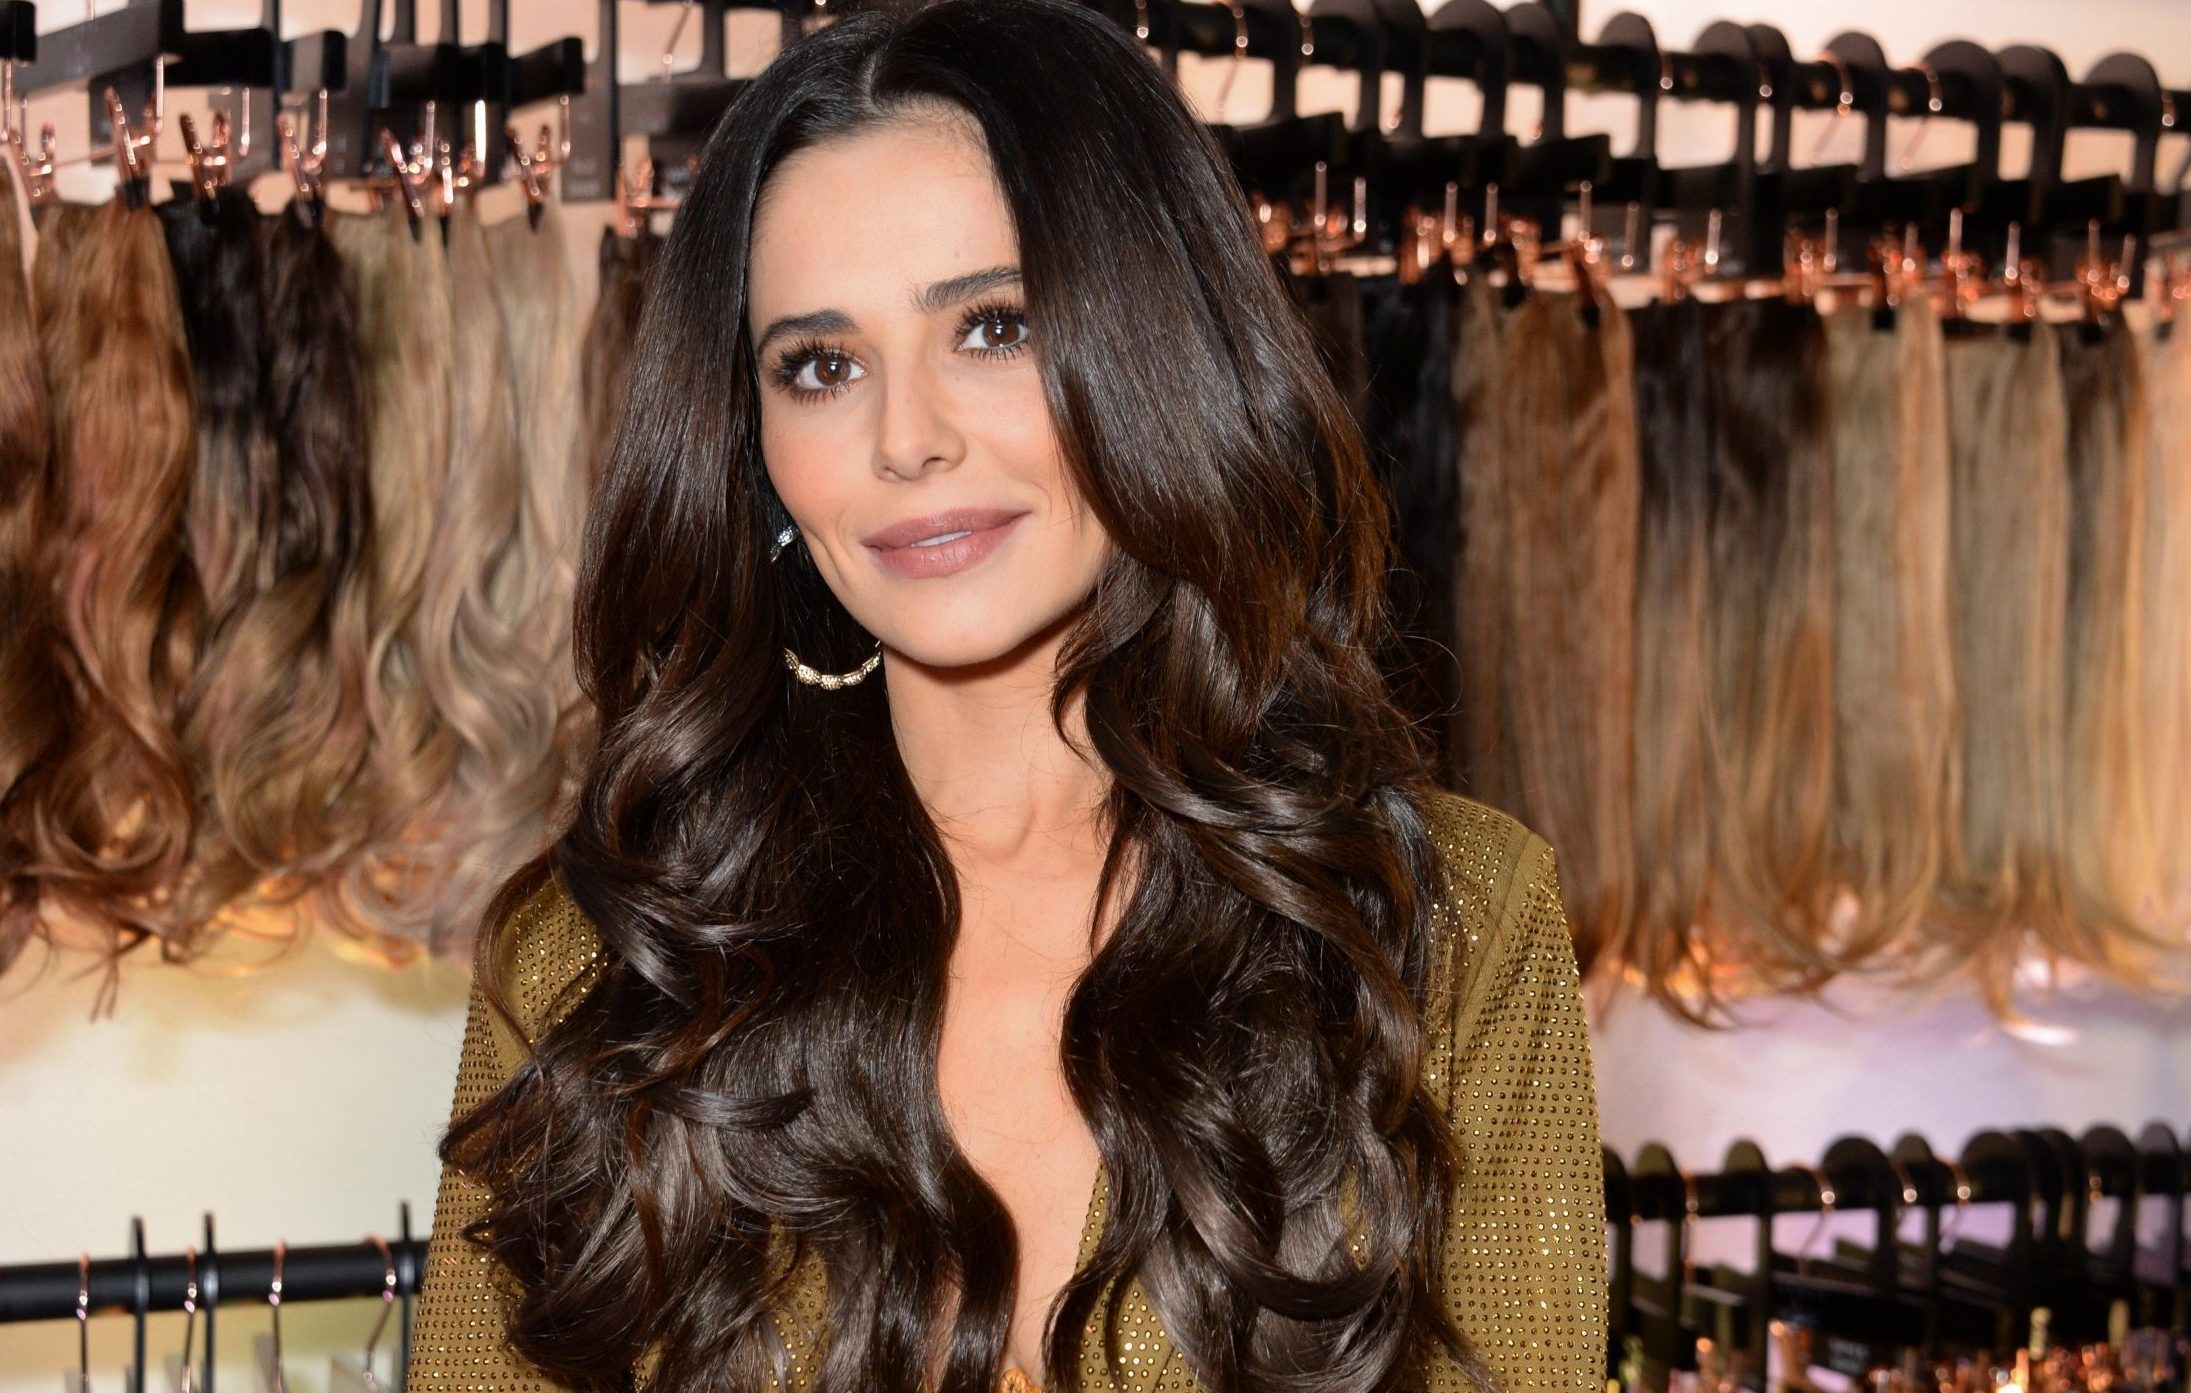 Cheryl age, net worth, current surname and is she dating anyone?